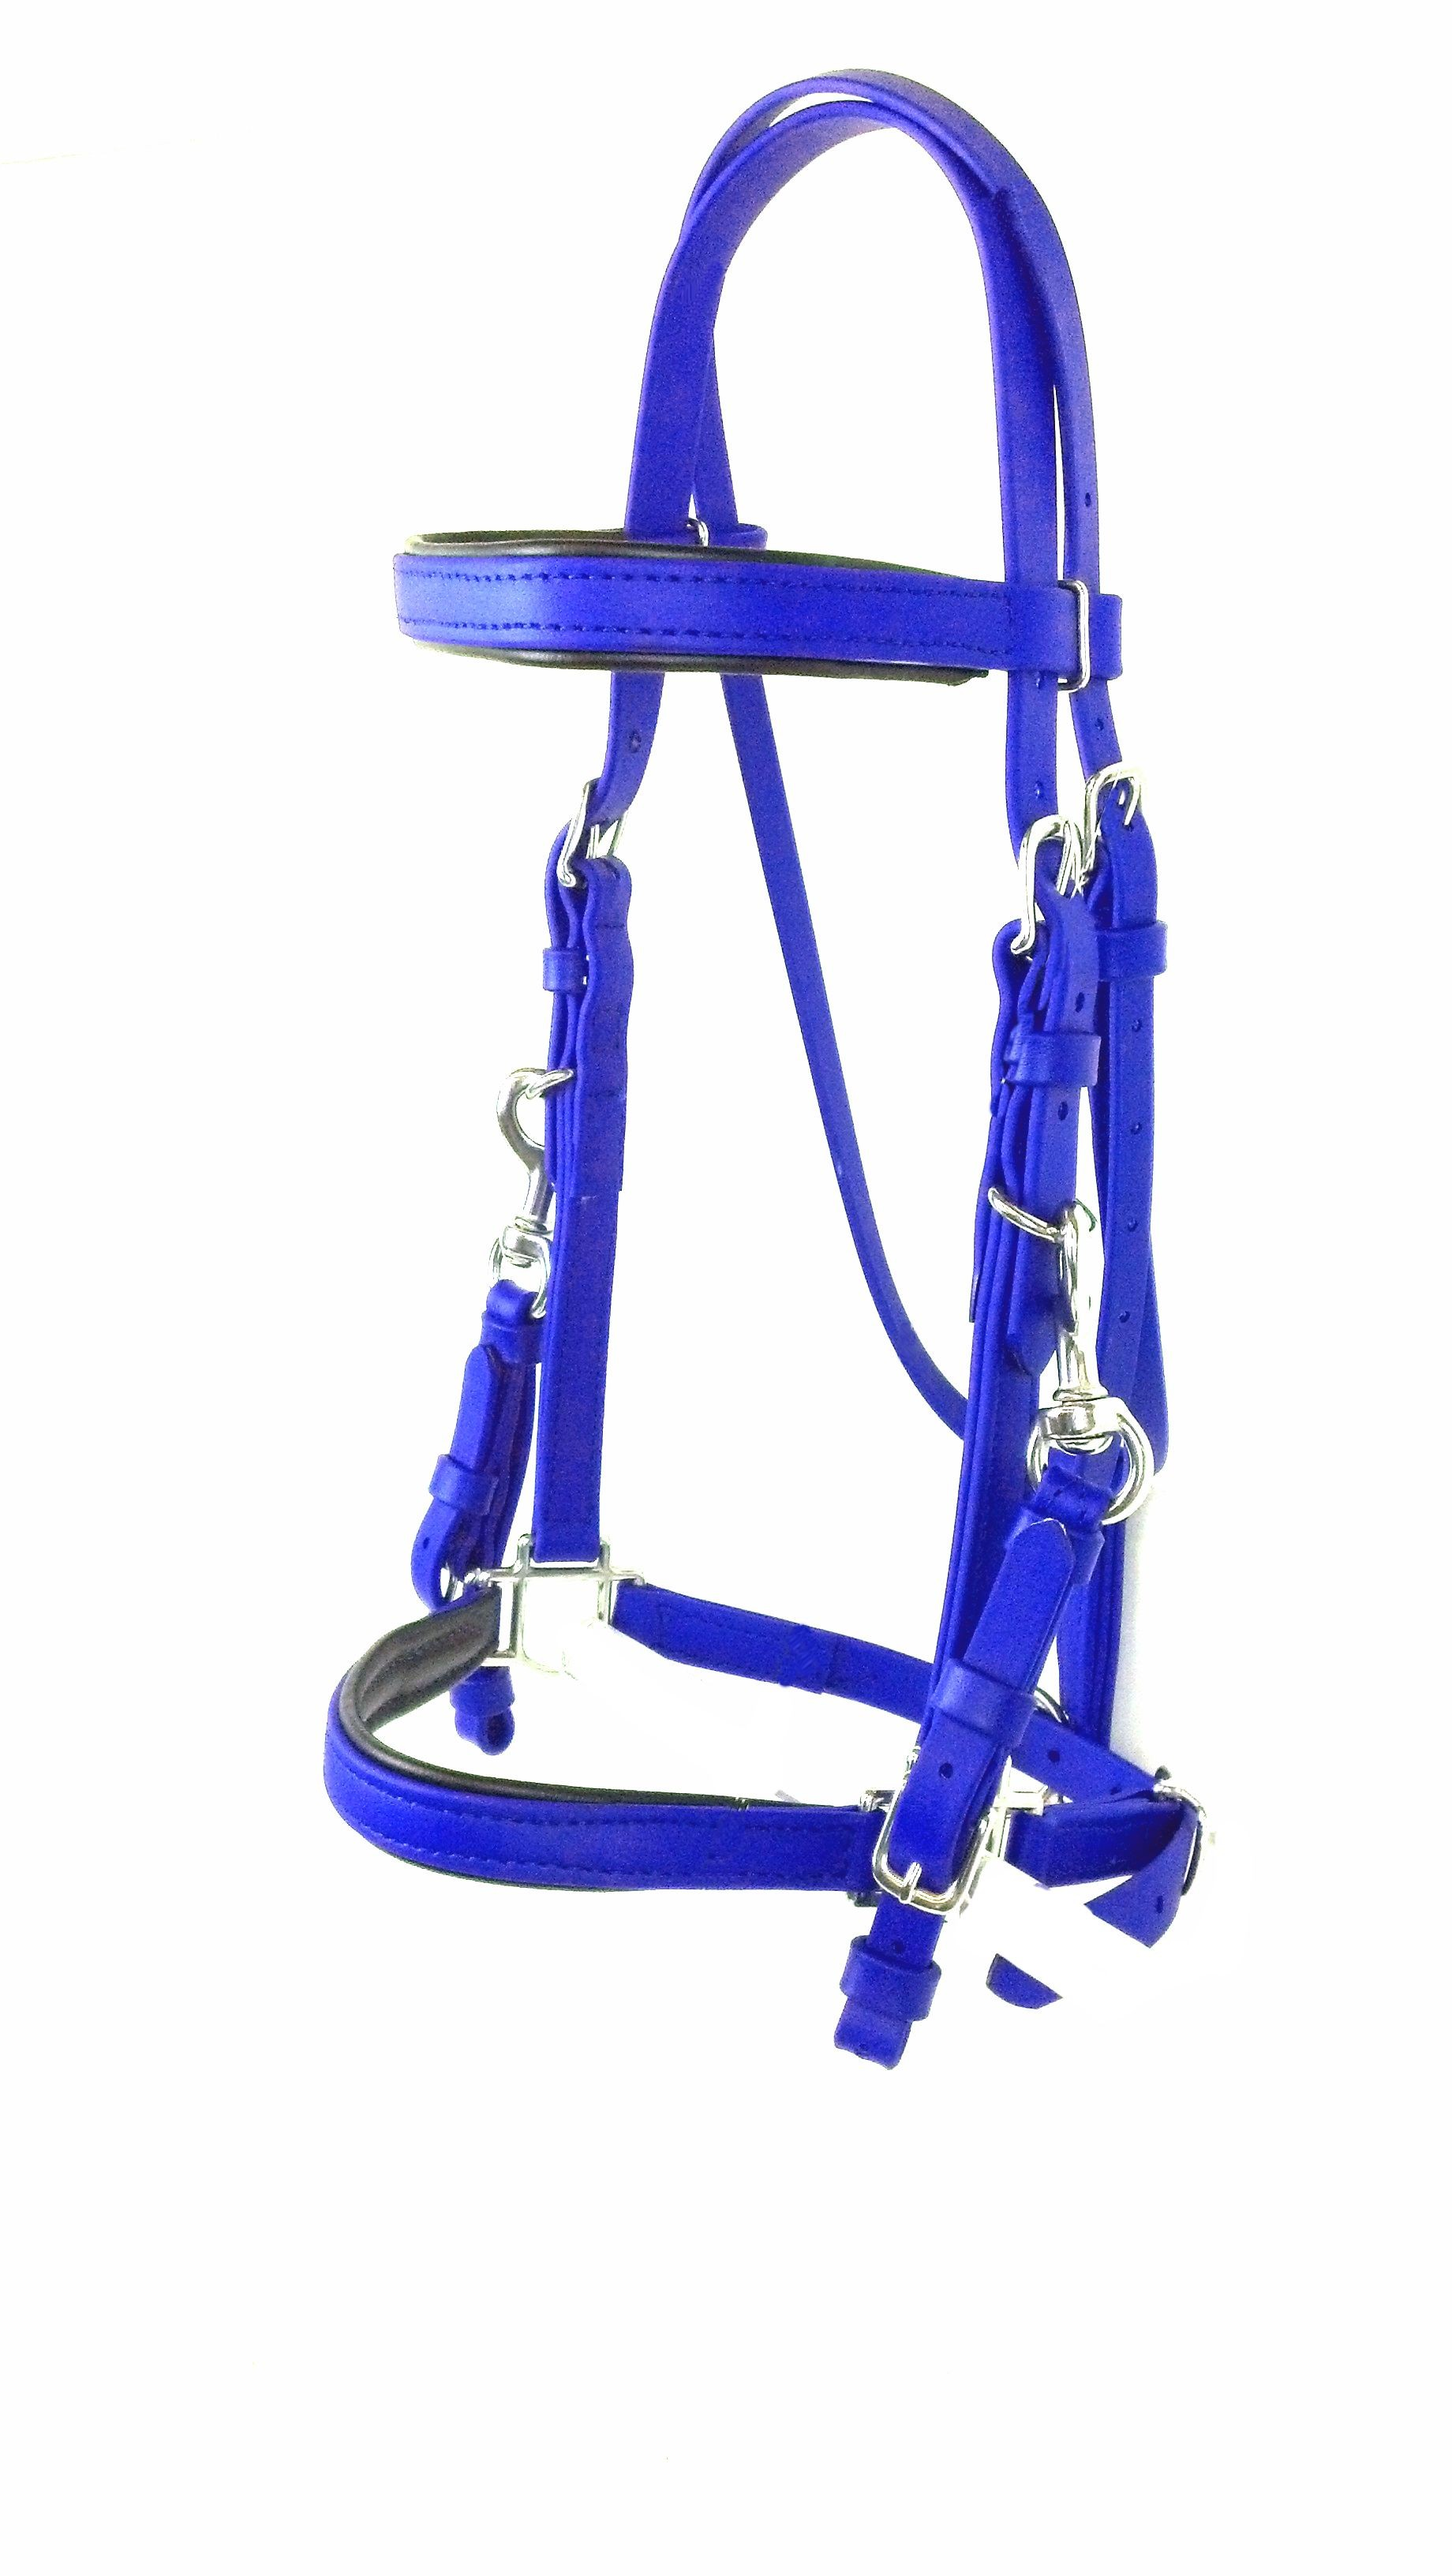 Halter Bridle - Royal Blue Padded Halter Bridle  in Stainless Steel